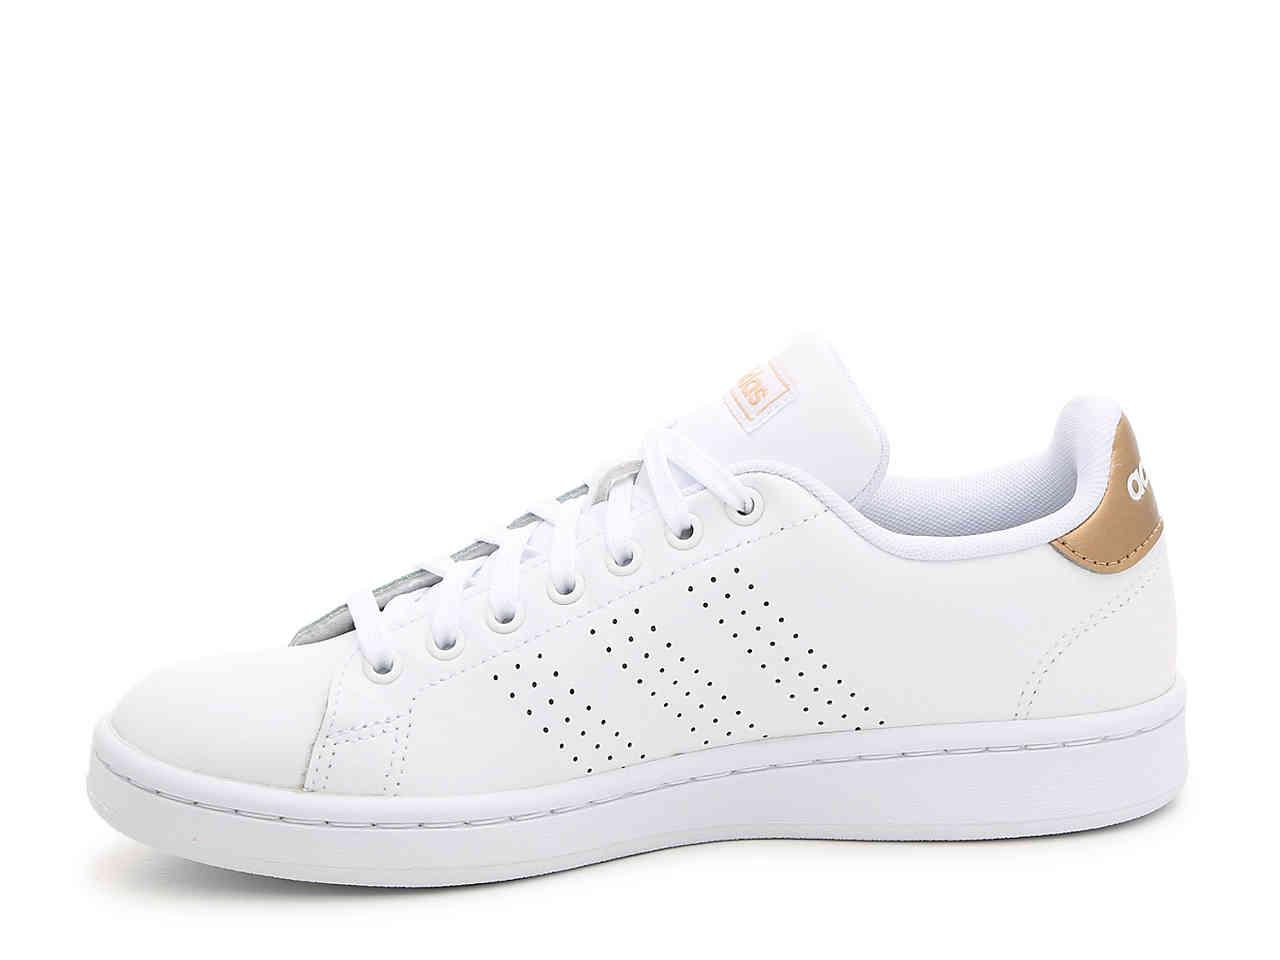 adidas Leather Advantage Sneaker in